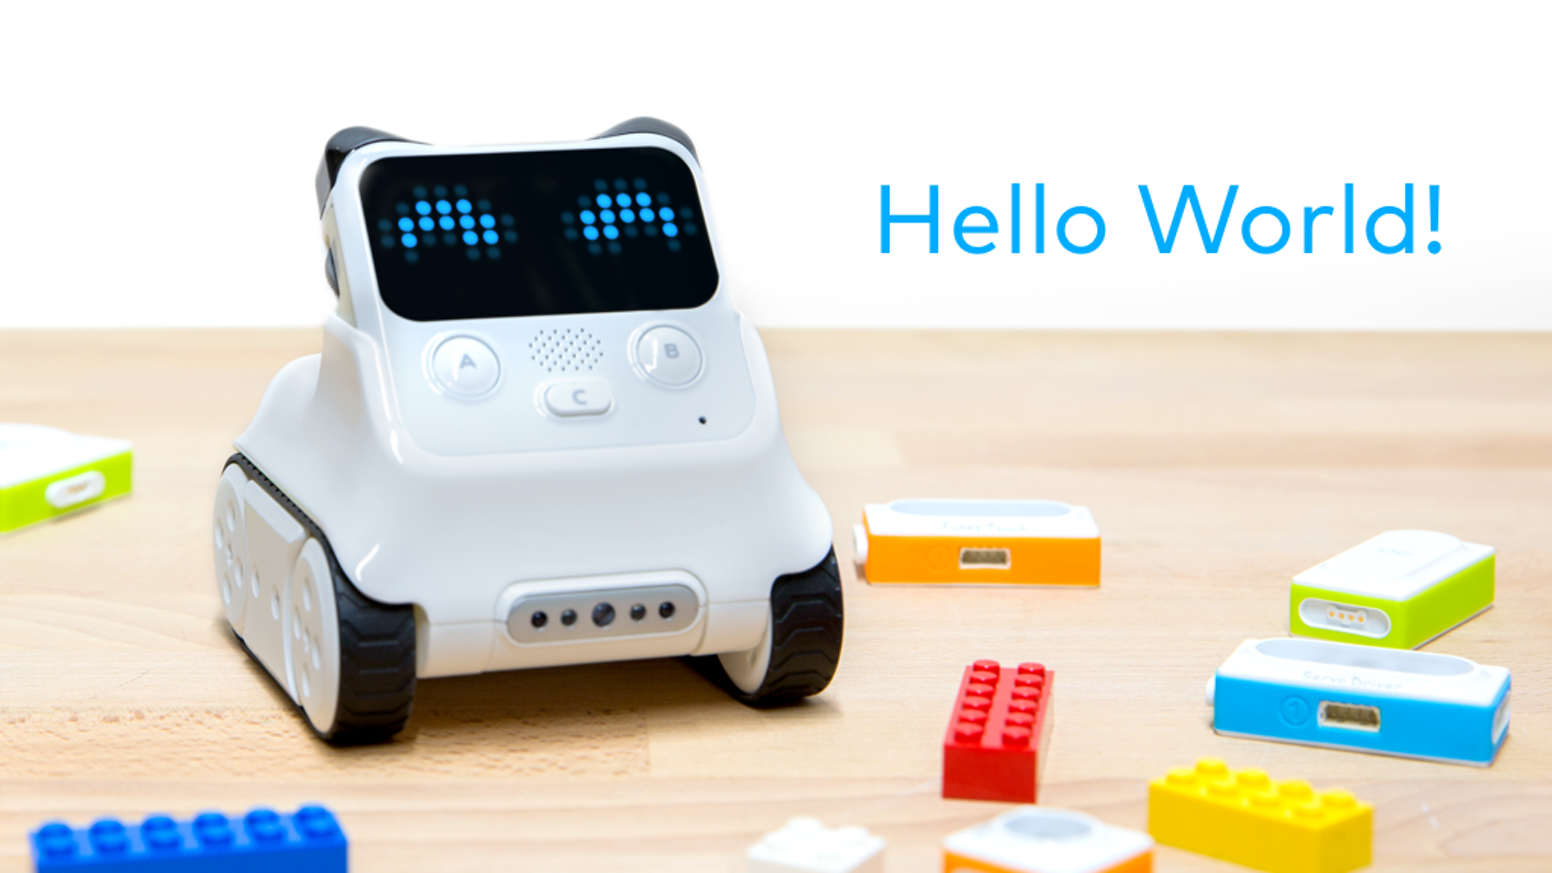 Meet the robot that helps every child learn coding and AI